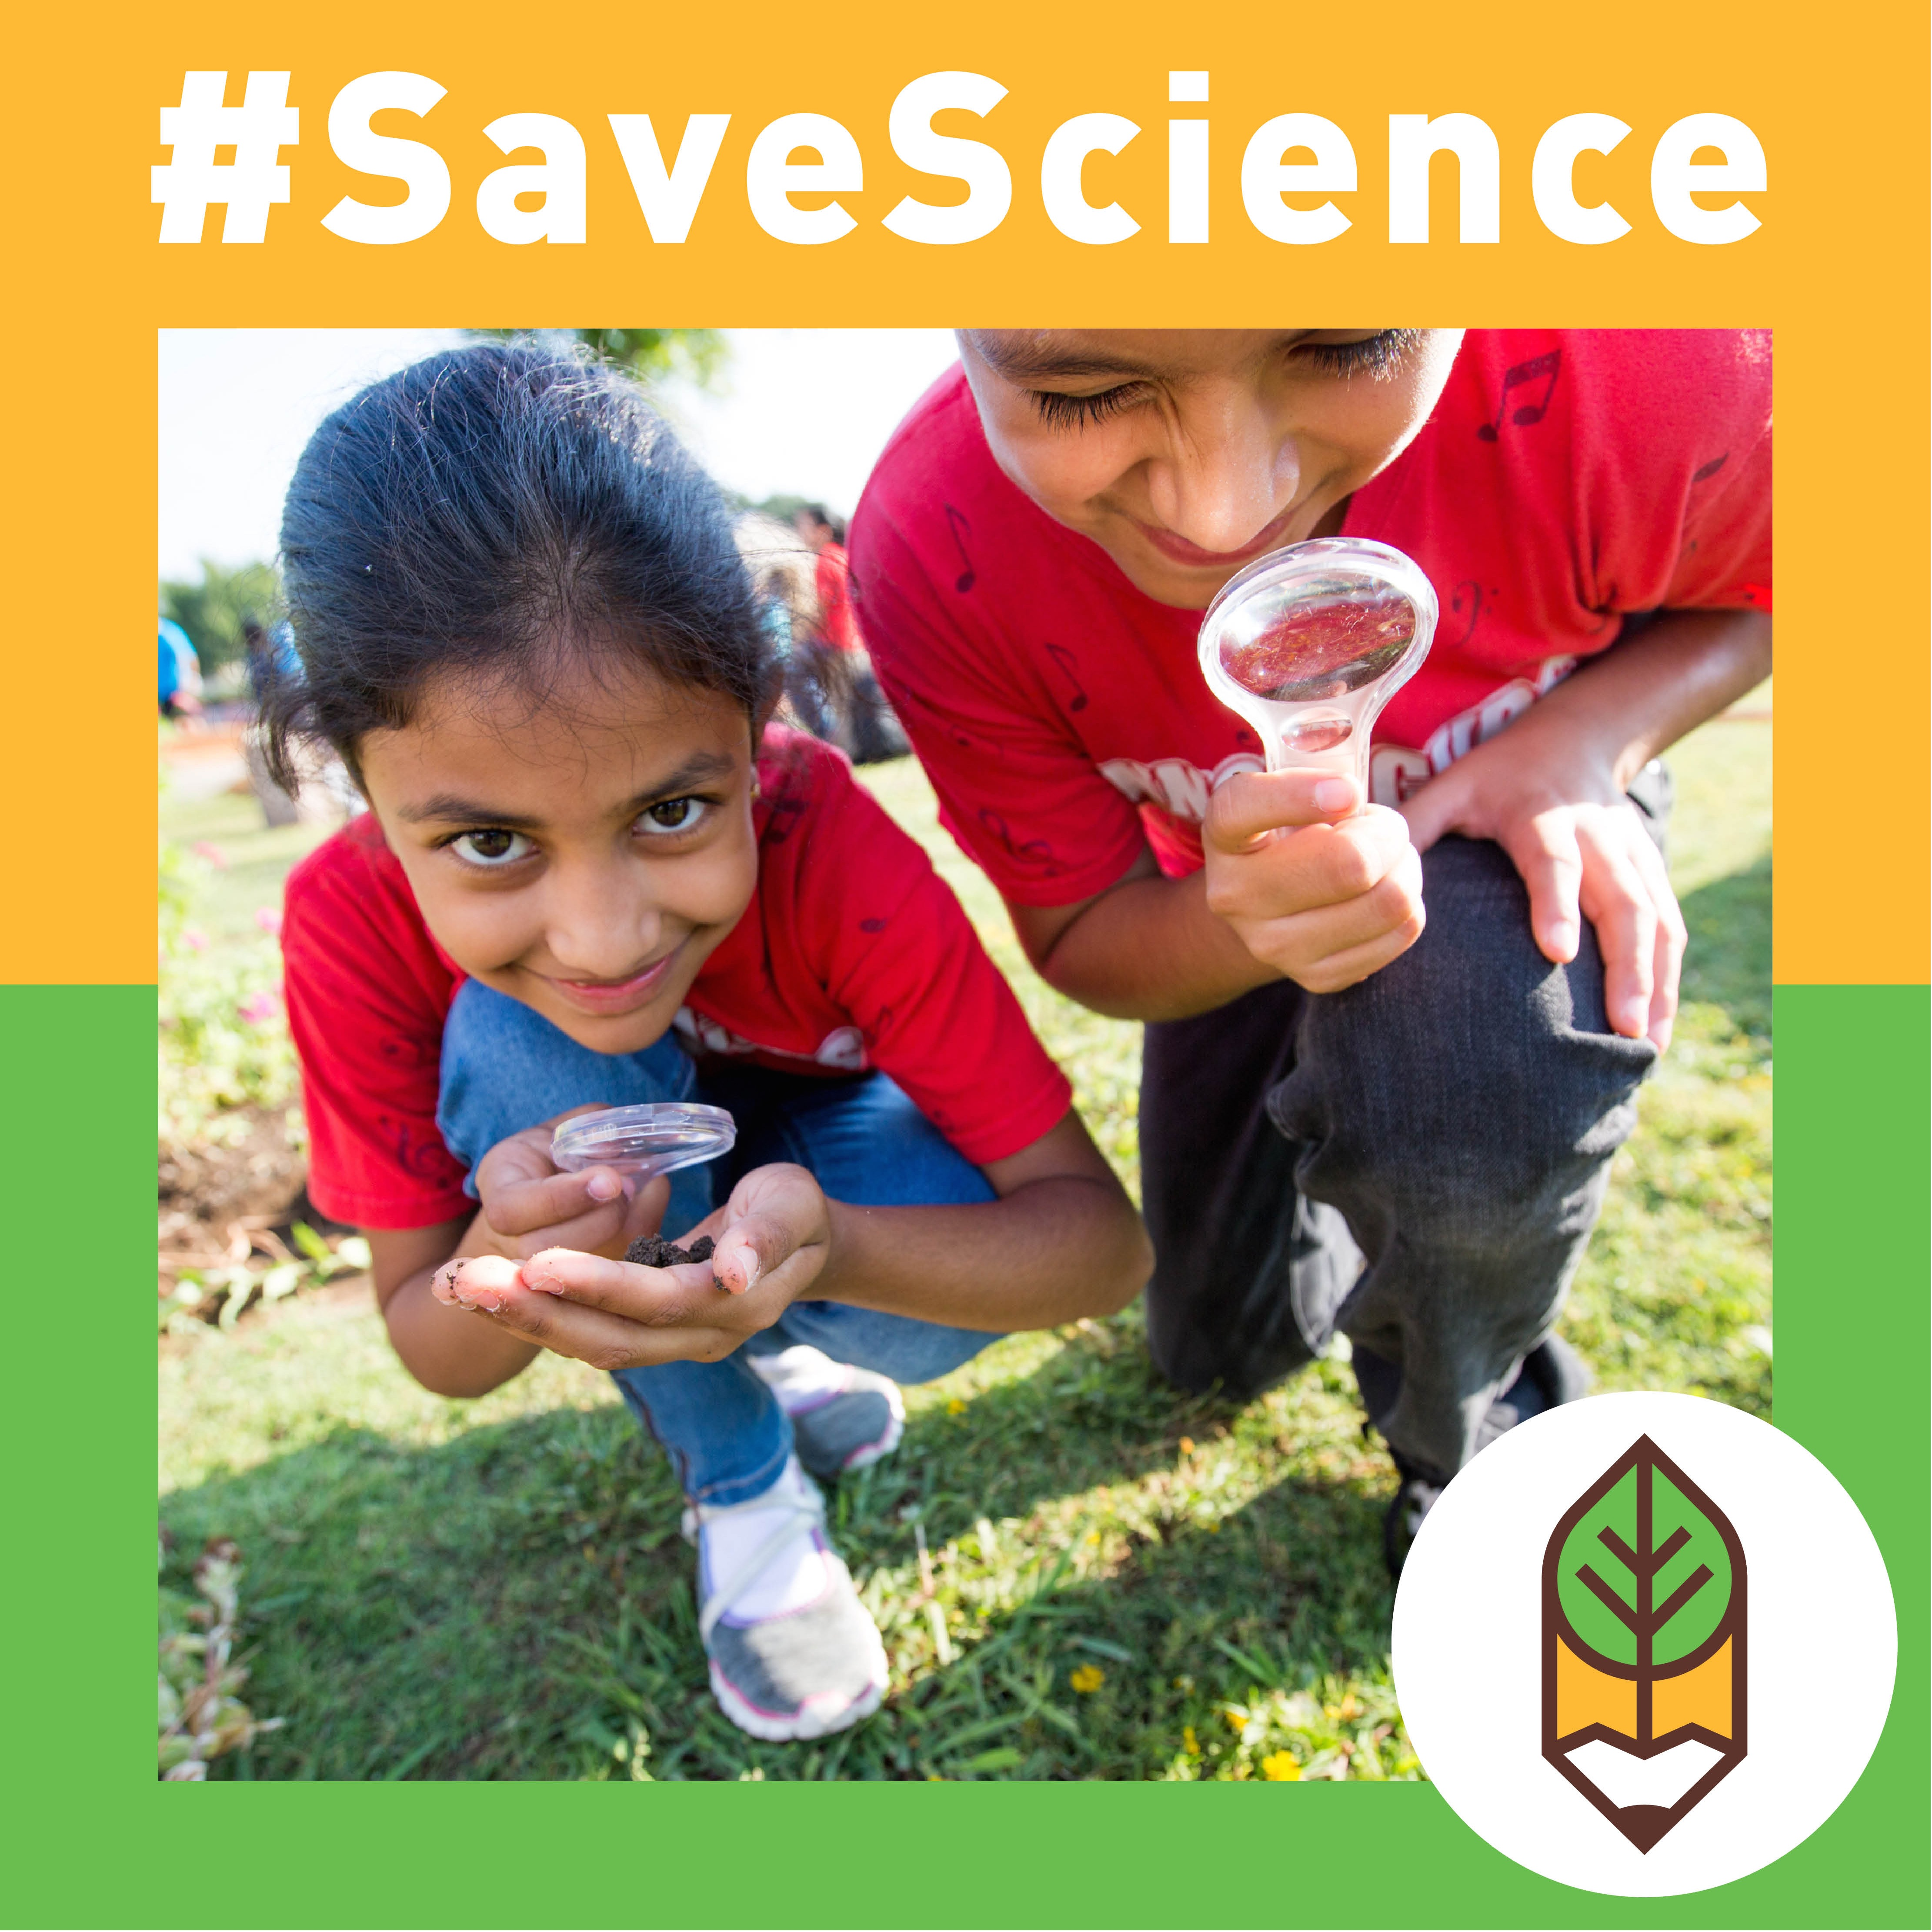 savescience_kids_16